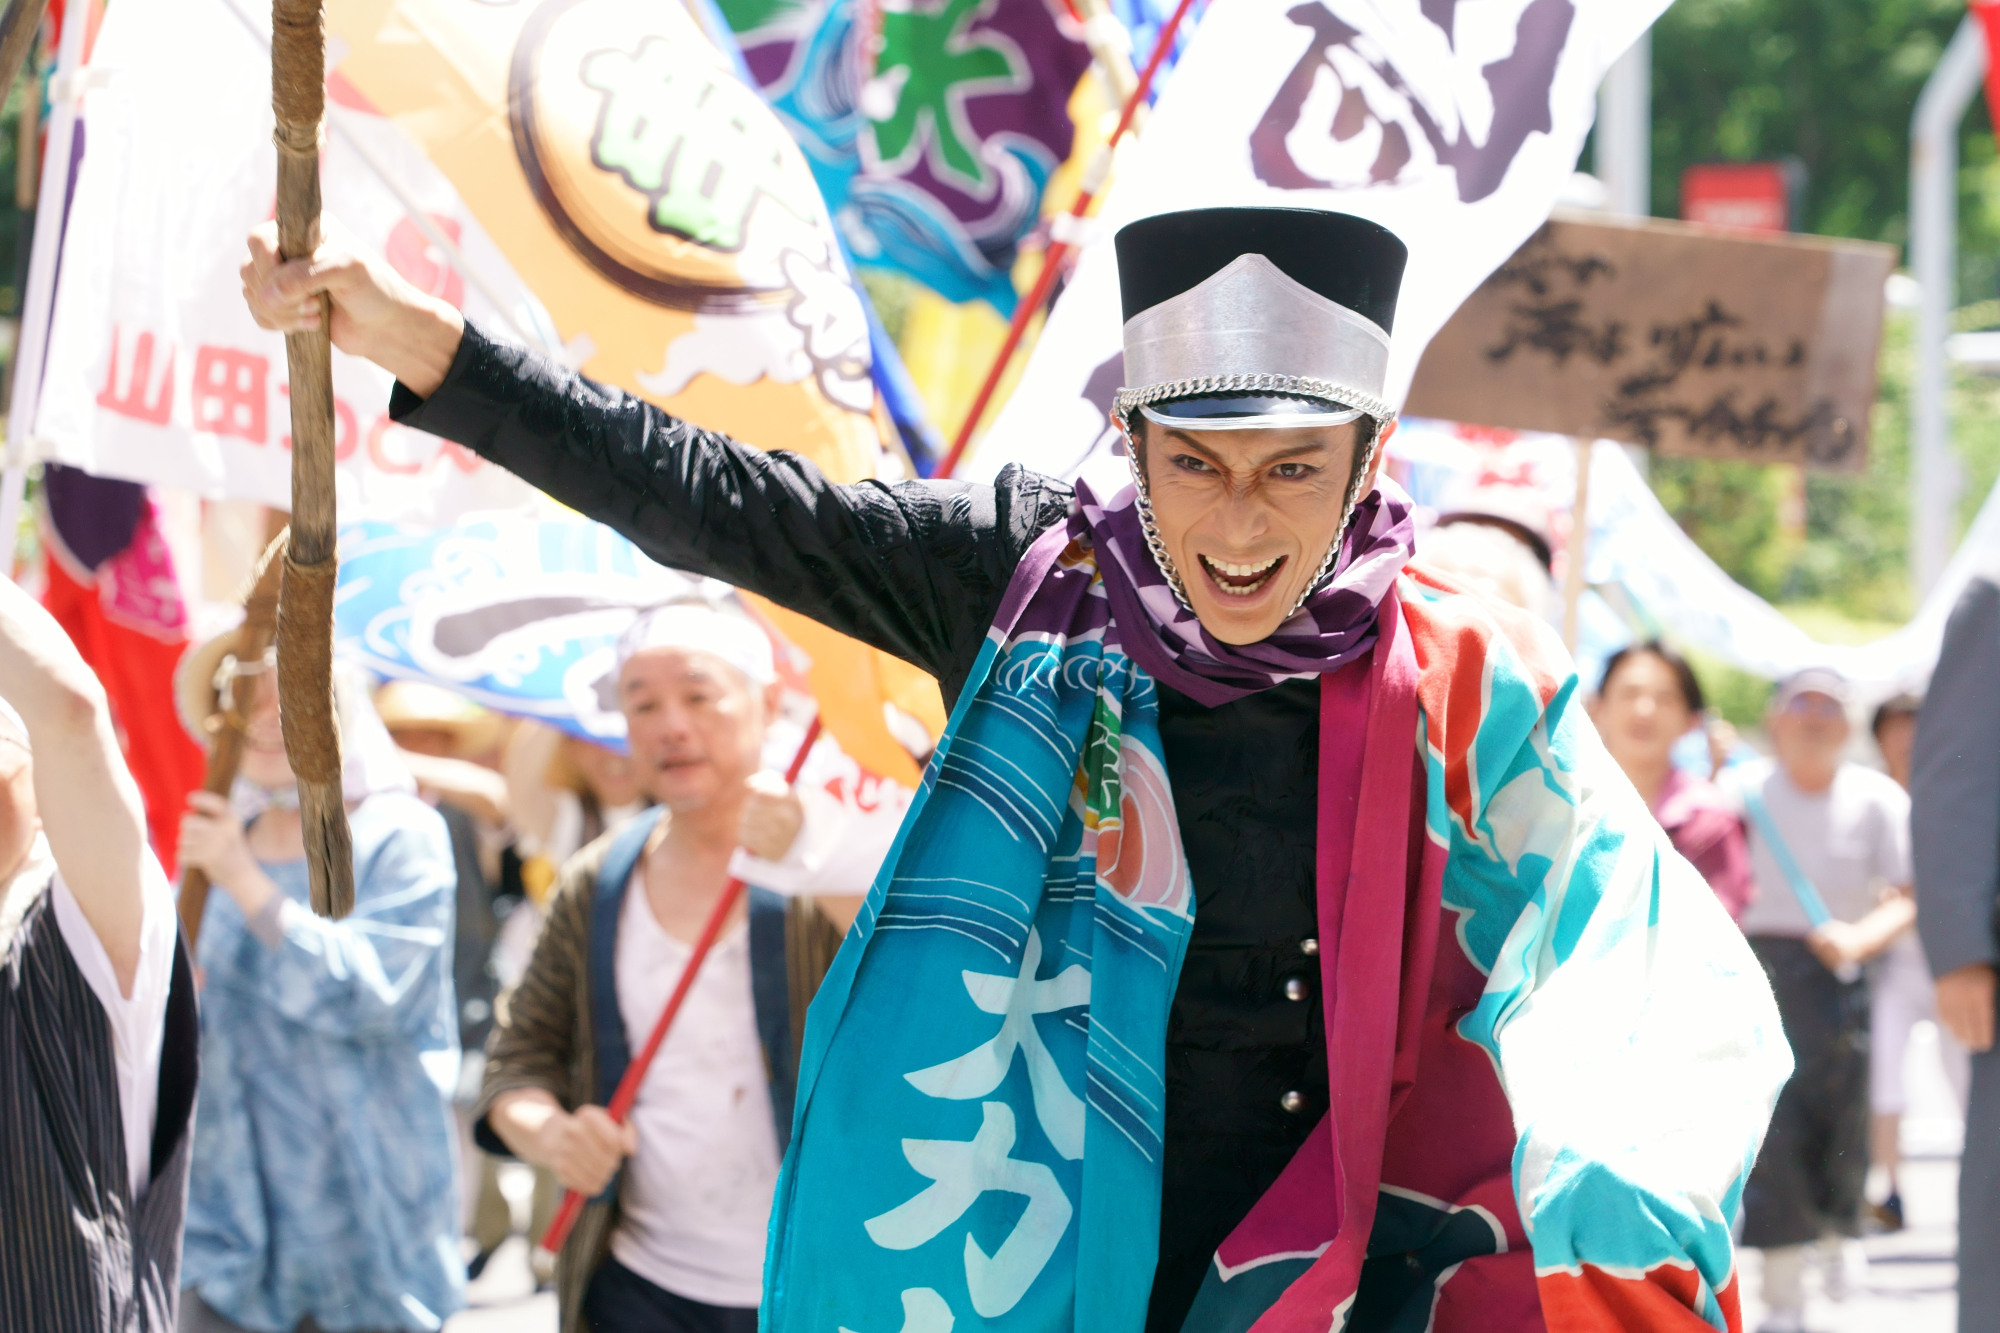 Capital punishment: In 'Fly Me to the Saitama,' Tokyo's northern neighbors rebel against Japan's ruling city. | ©2019 'FLY ME TO THE SAITAMA' FILM PARTNERS